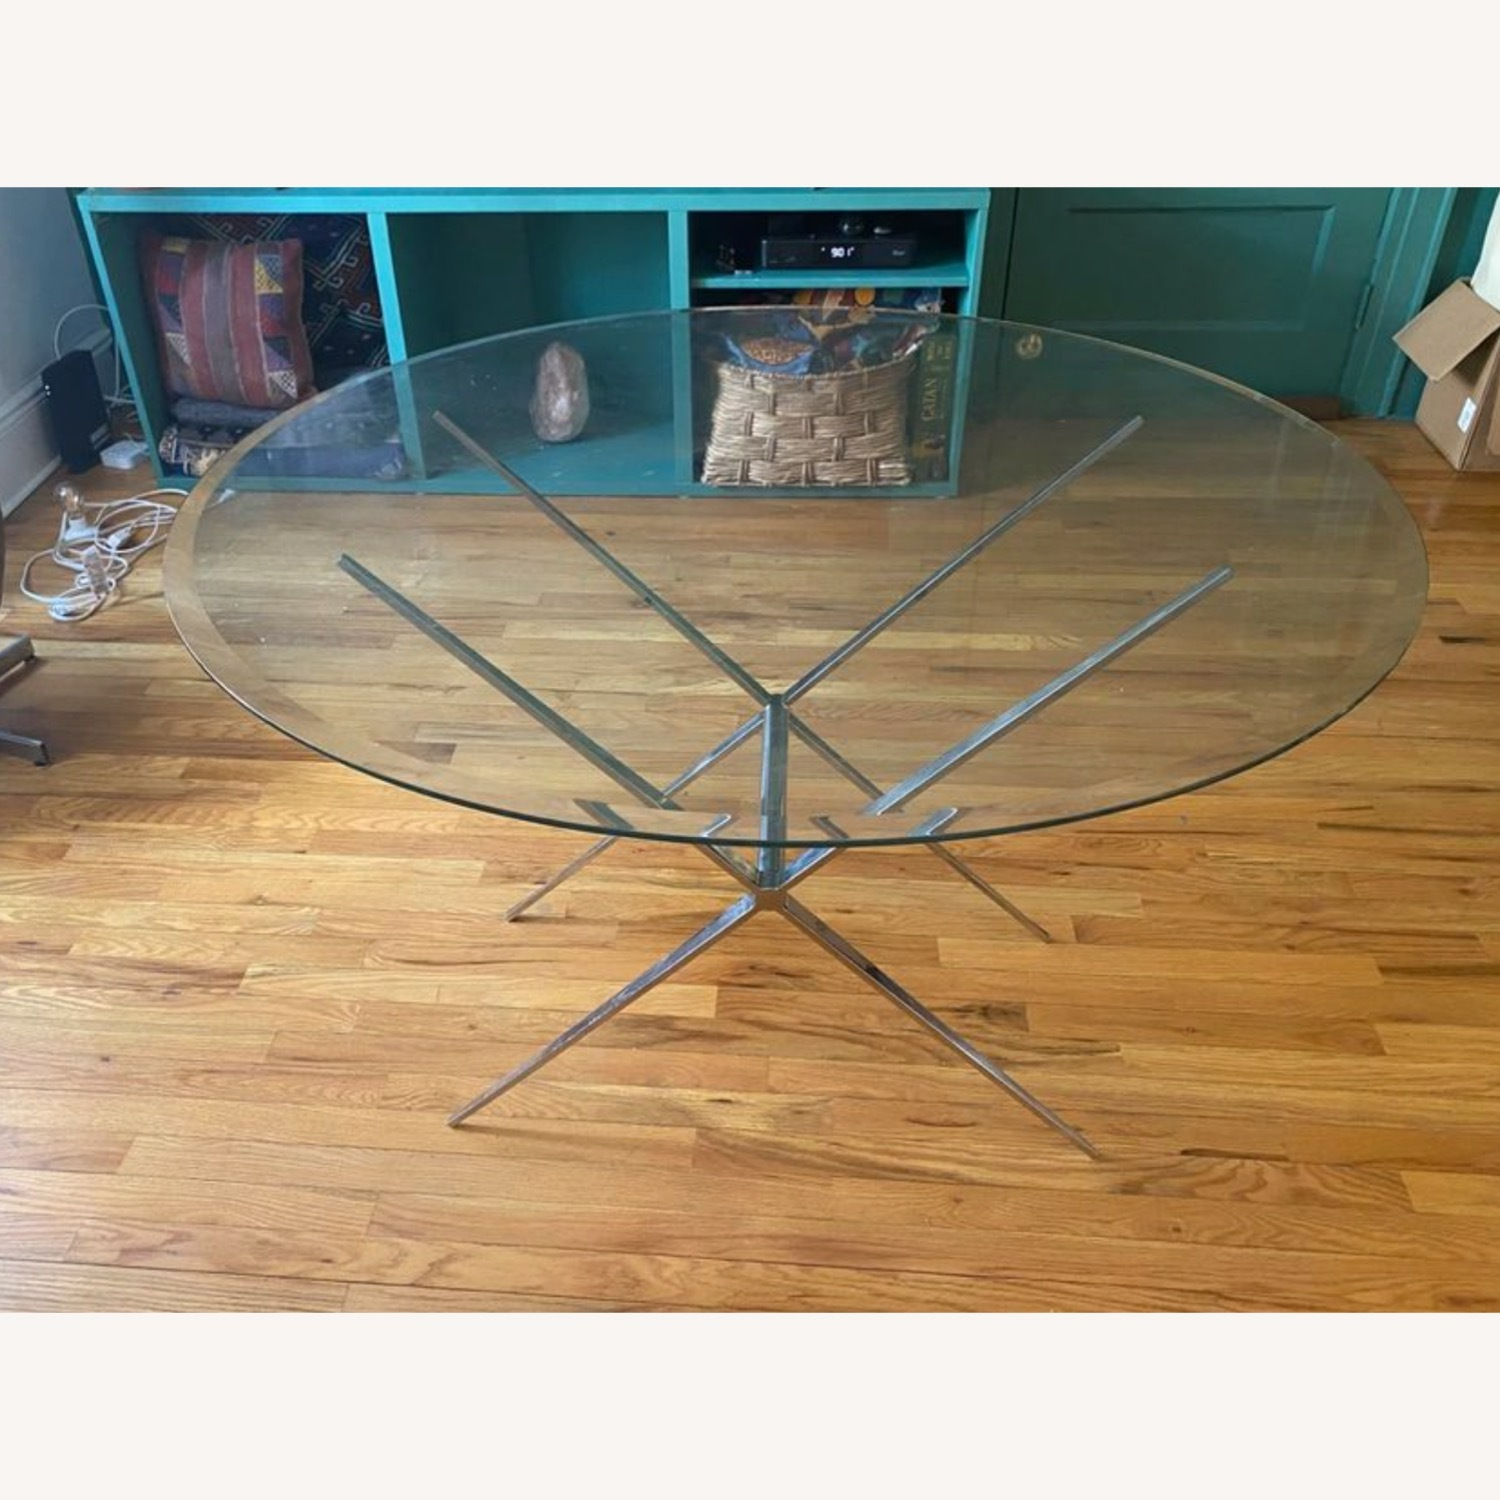 Vintage Glass Coffee Table with Reversible Stand - image-1